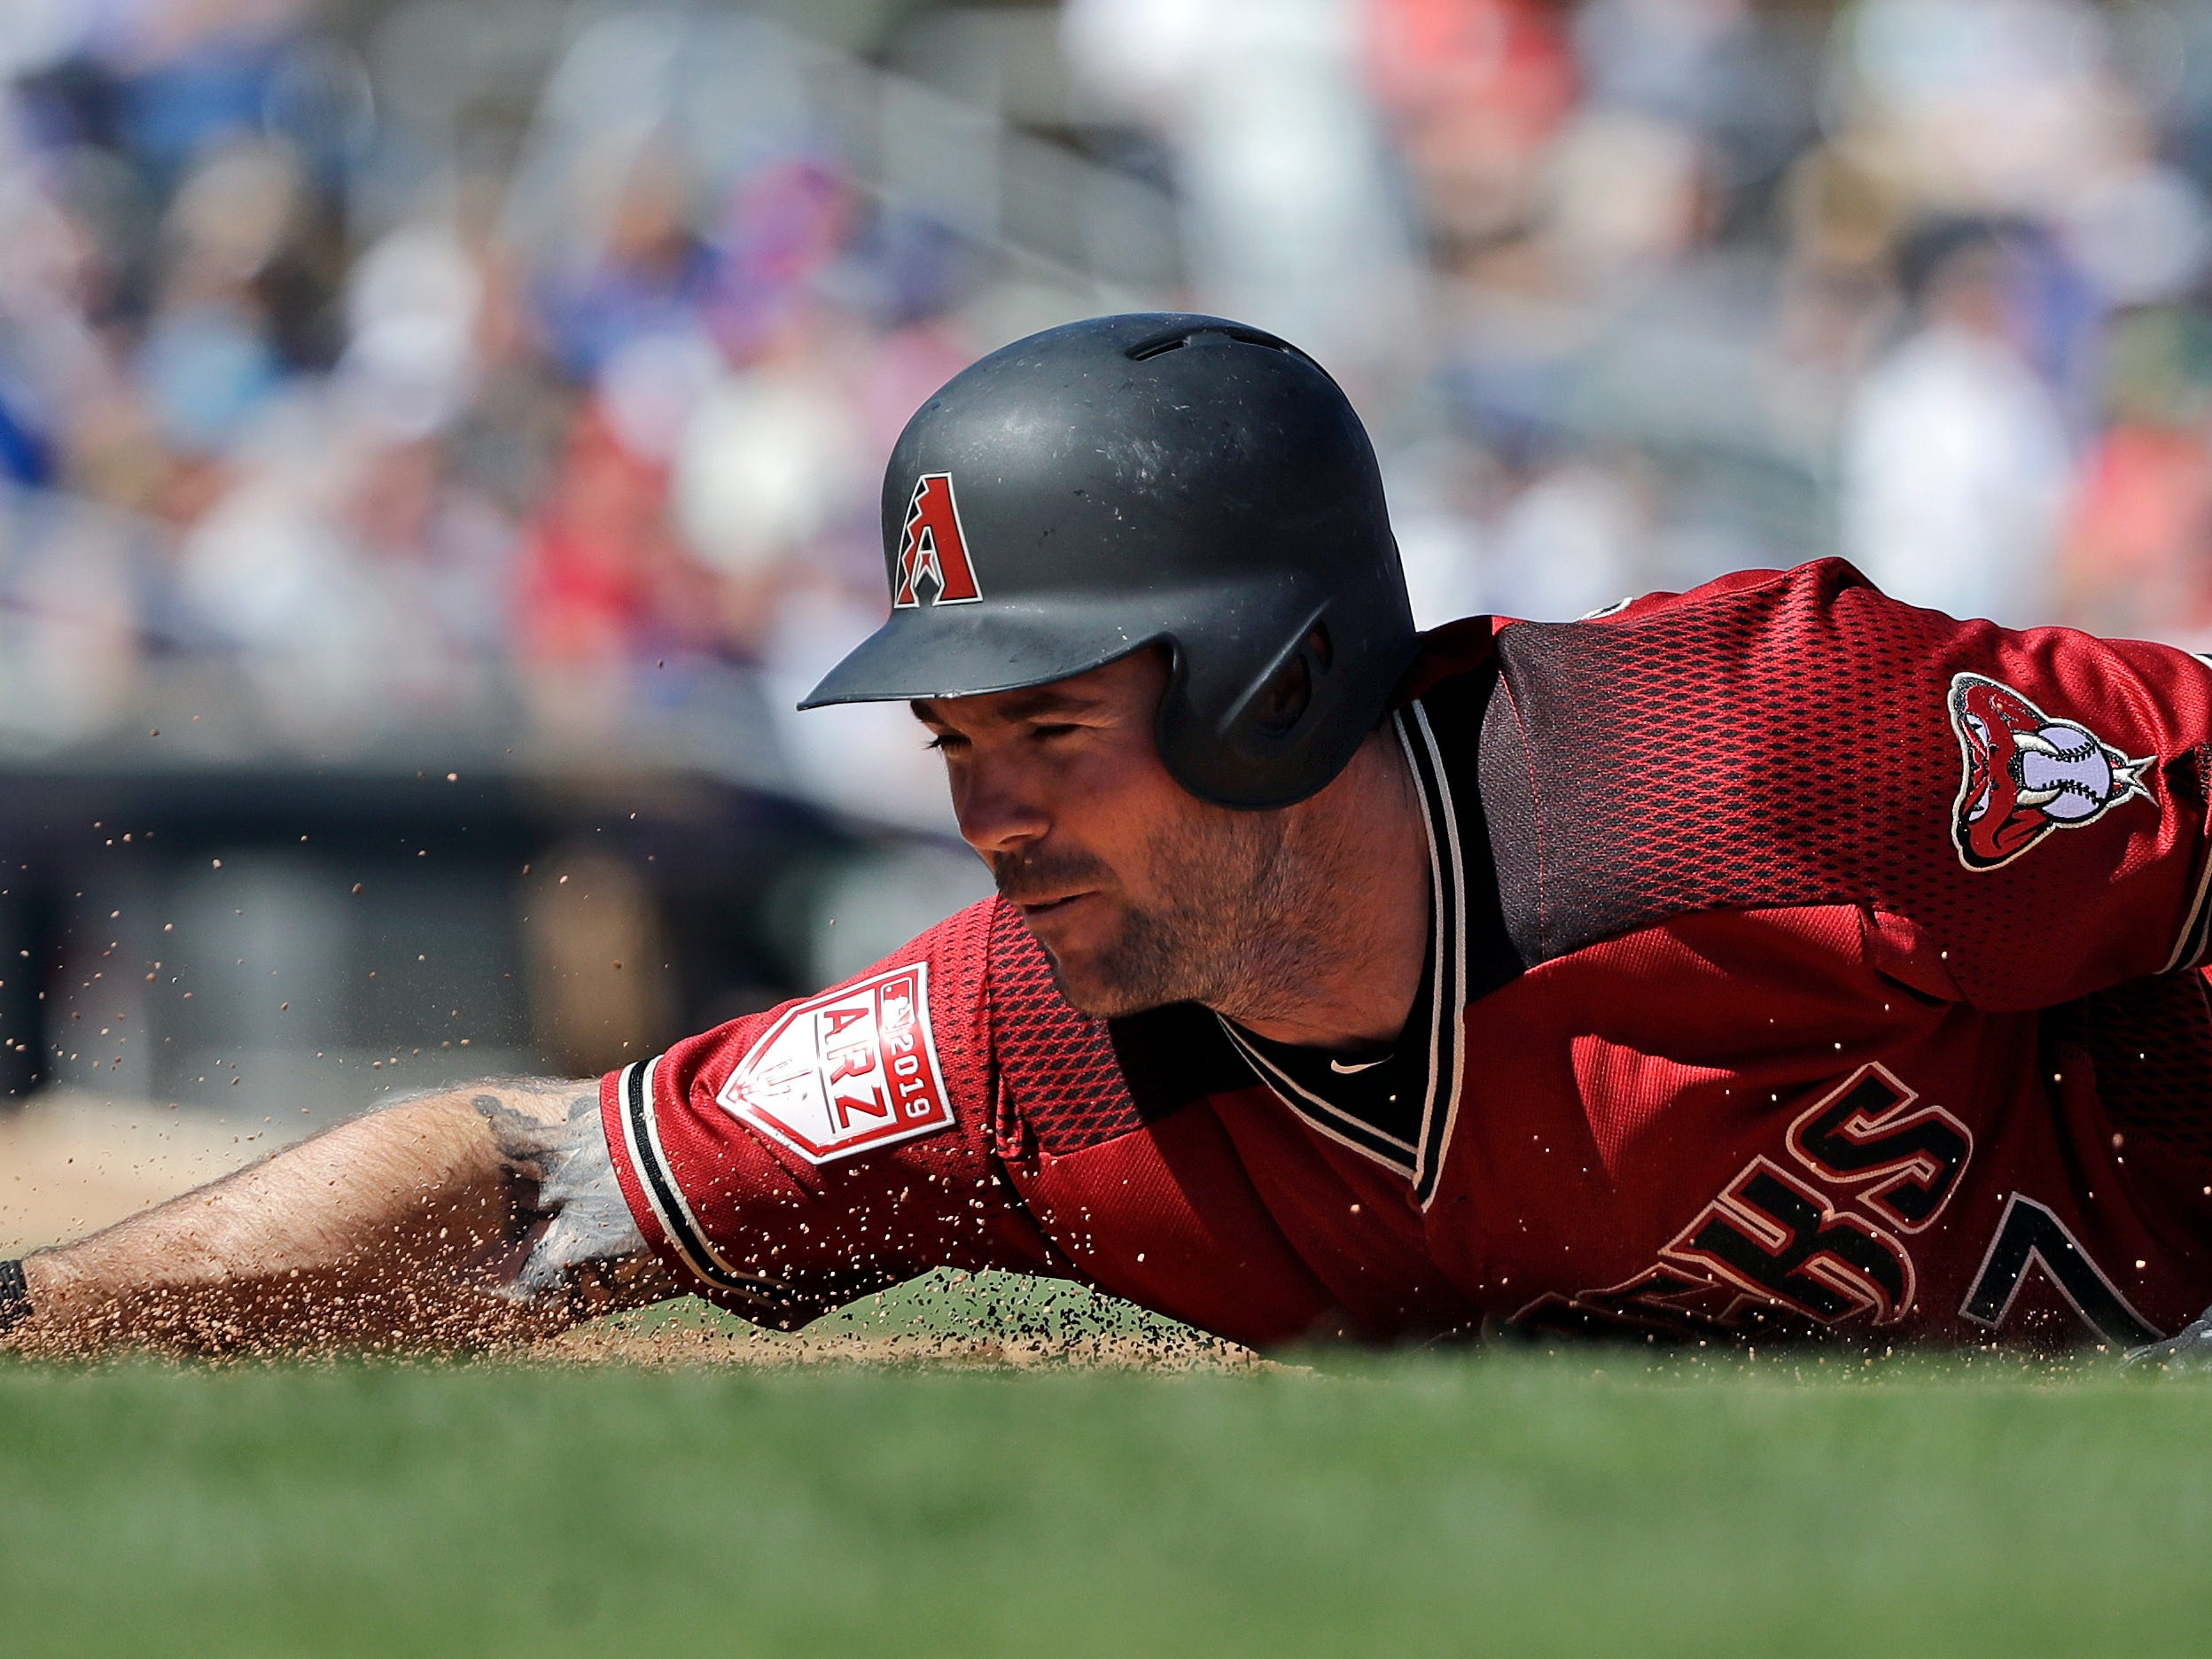 Arizona Diamondbacks' Matt Szczur dives safely back to first base on a pick-off attempt against the Chicago Cubs in the fourth inning of a spring training baseball game Saturday, March 16, 2019, in Scottsdale, Ariz.